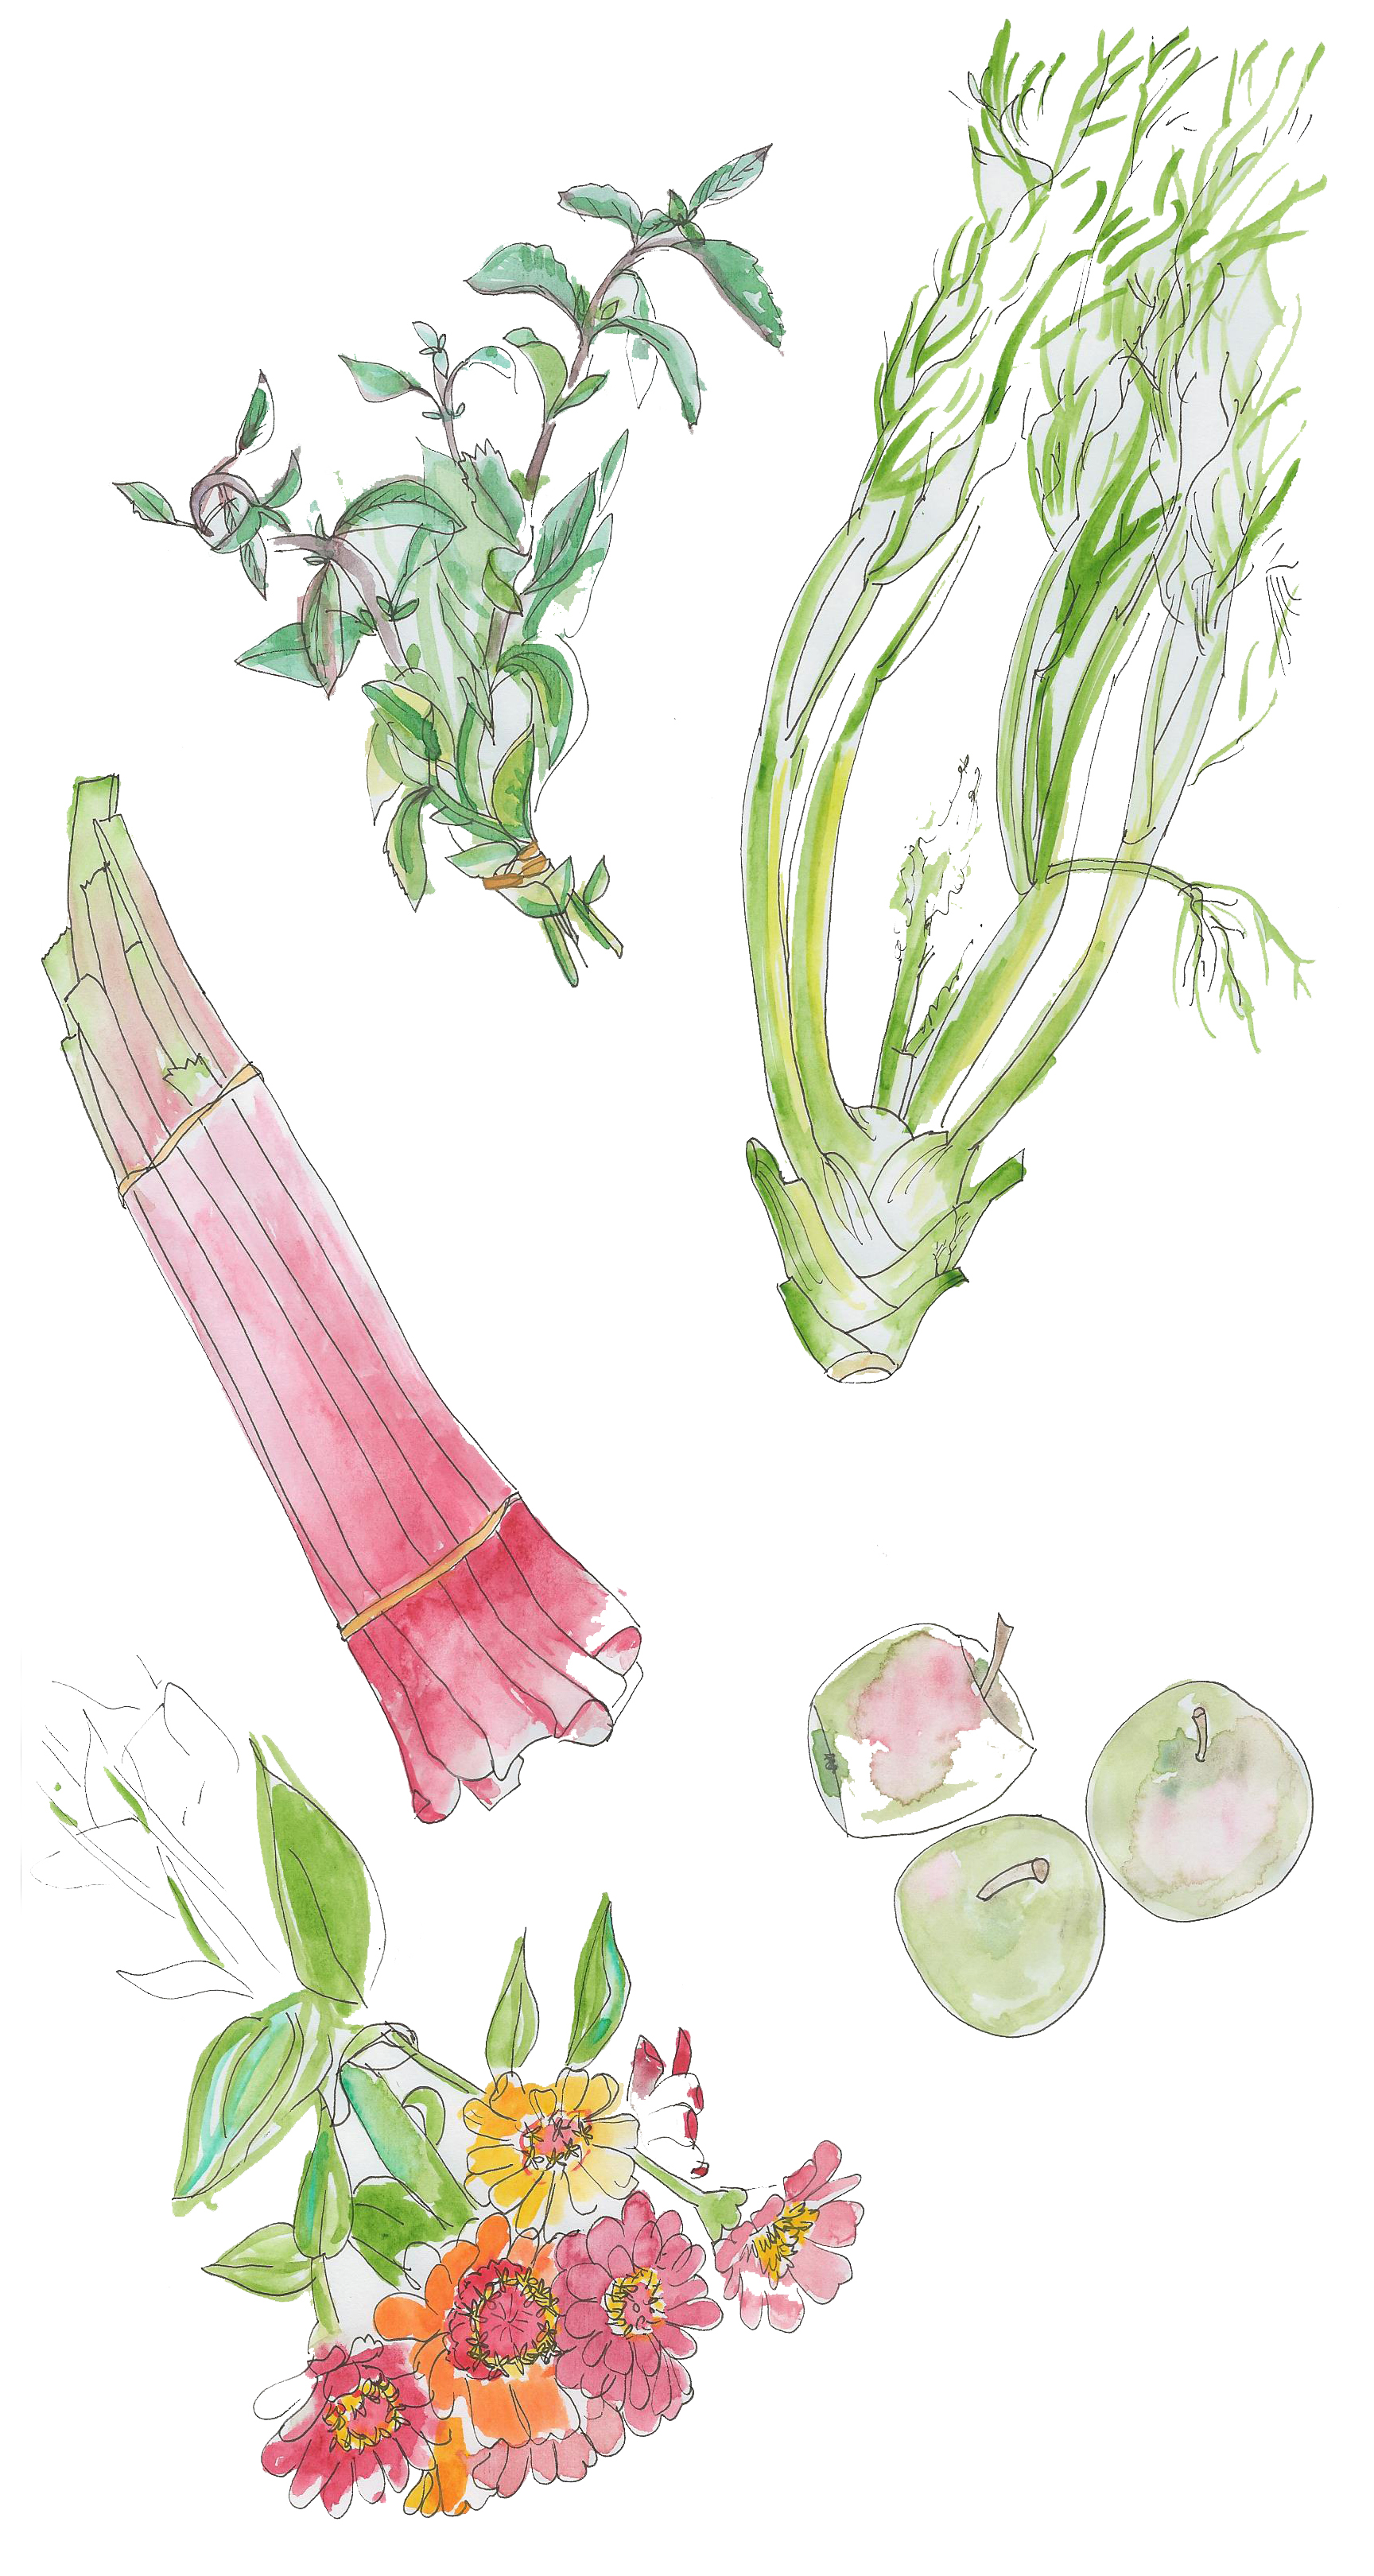 rhubarb-apples-fennel-bulb